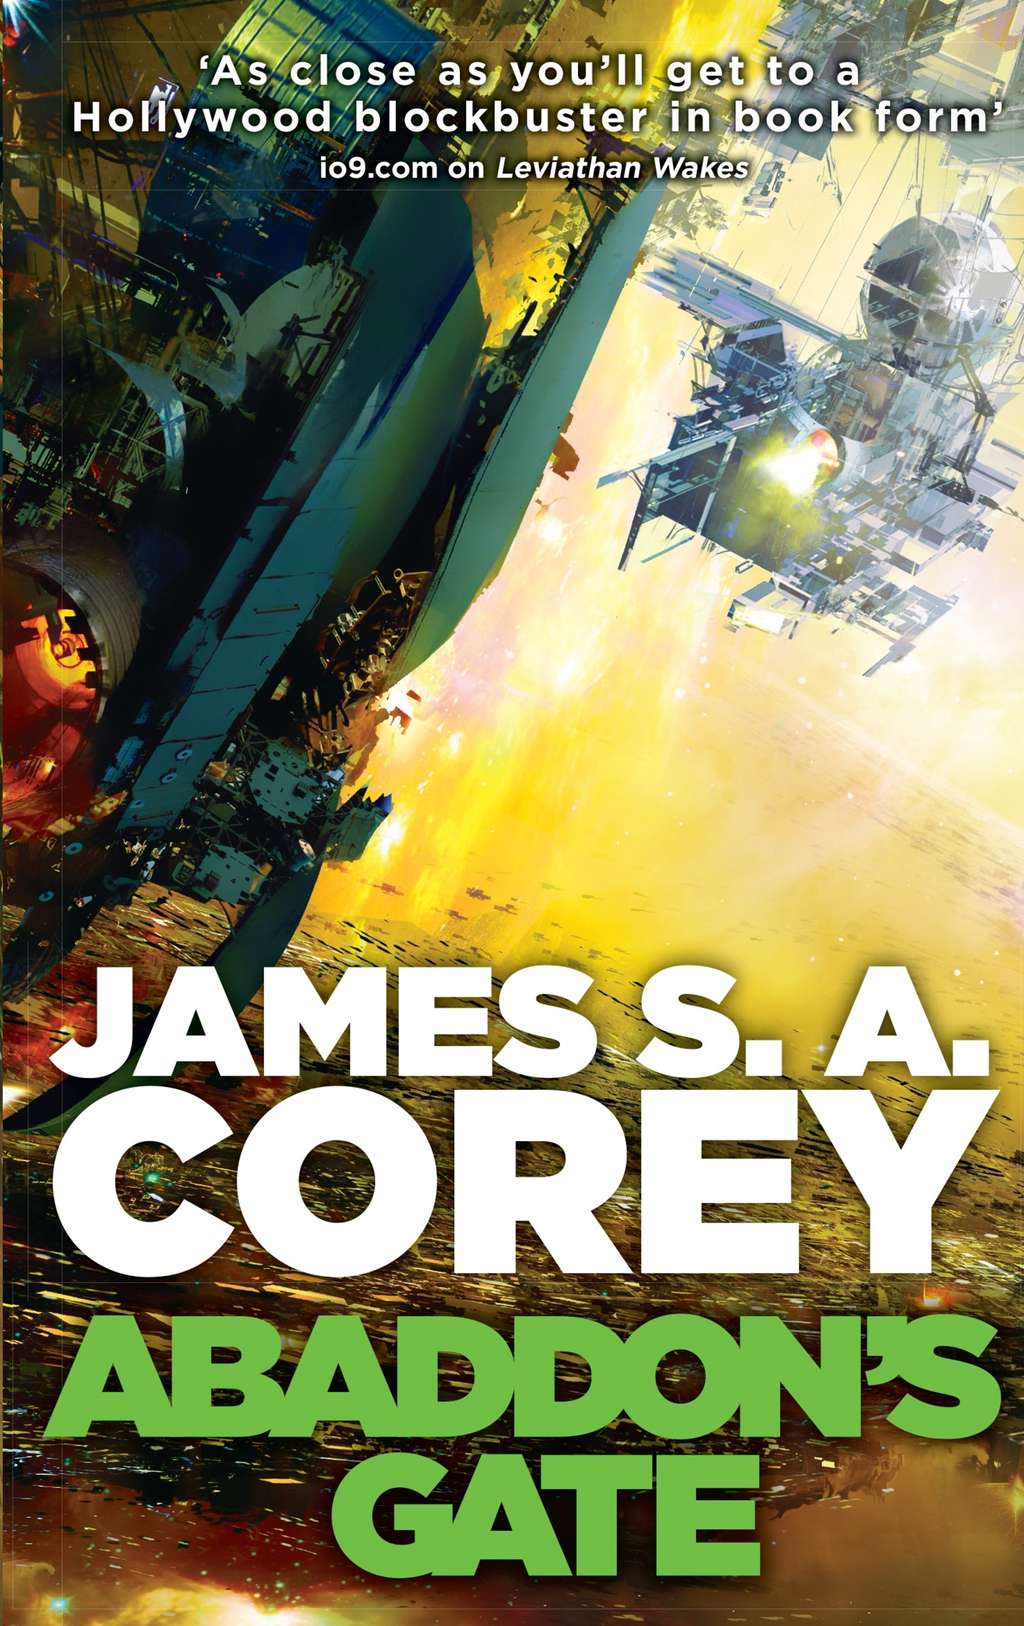 Abaddon's Gate Book Three of the Expanse series